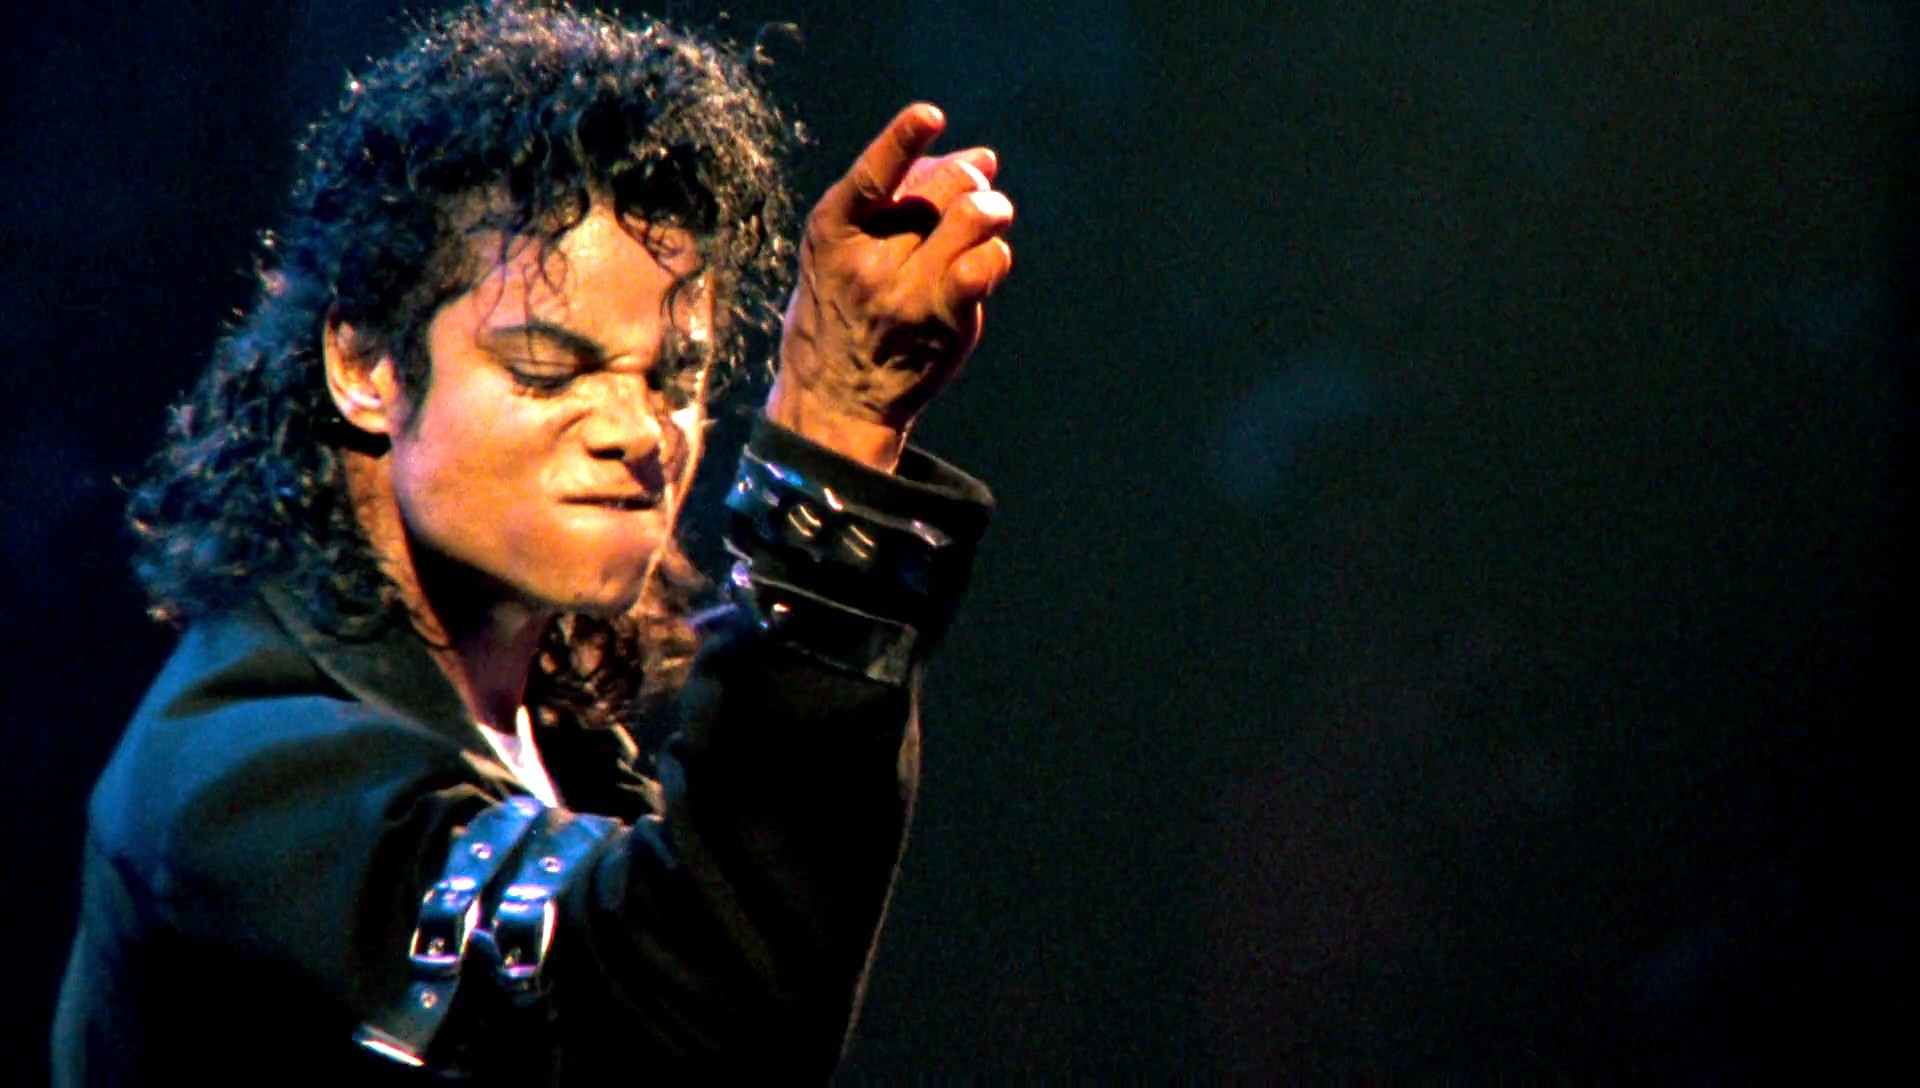 1920x1088 ... Collection of Michael Jackson Widescreen Wallpapers: 5488290,   ...